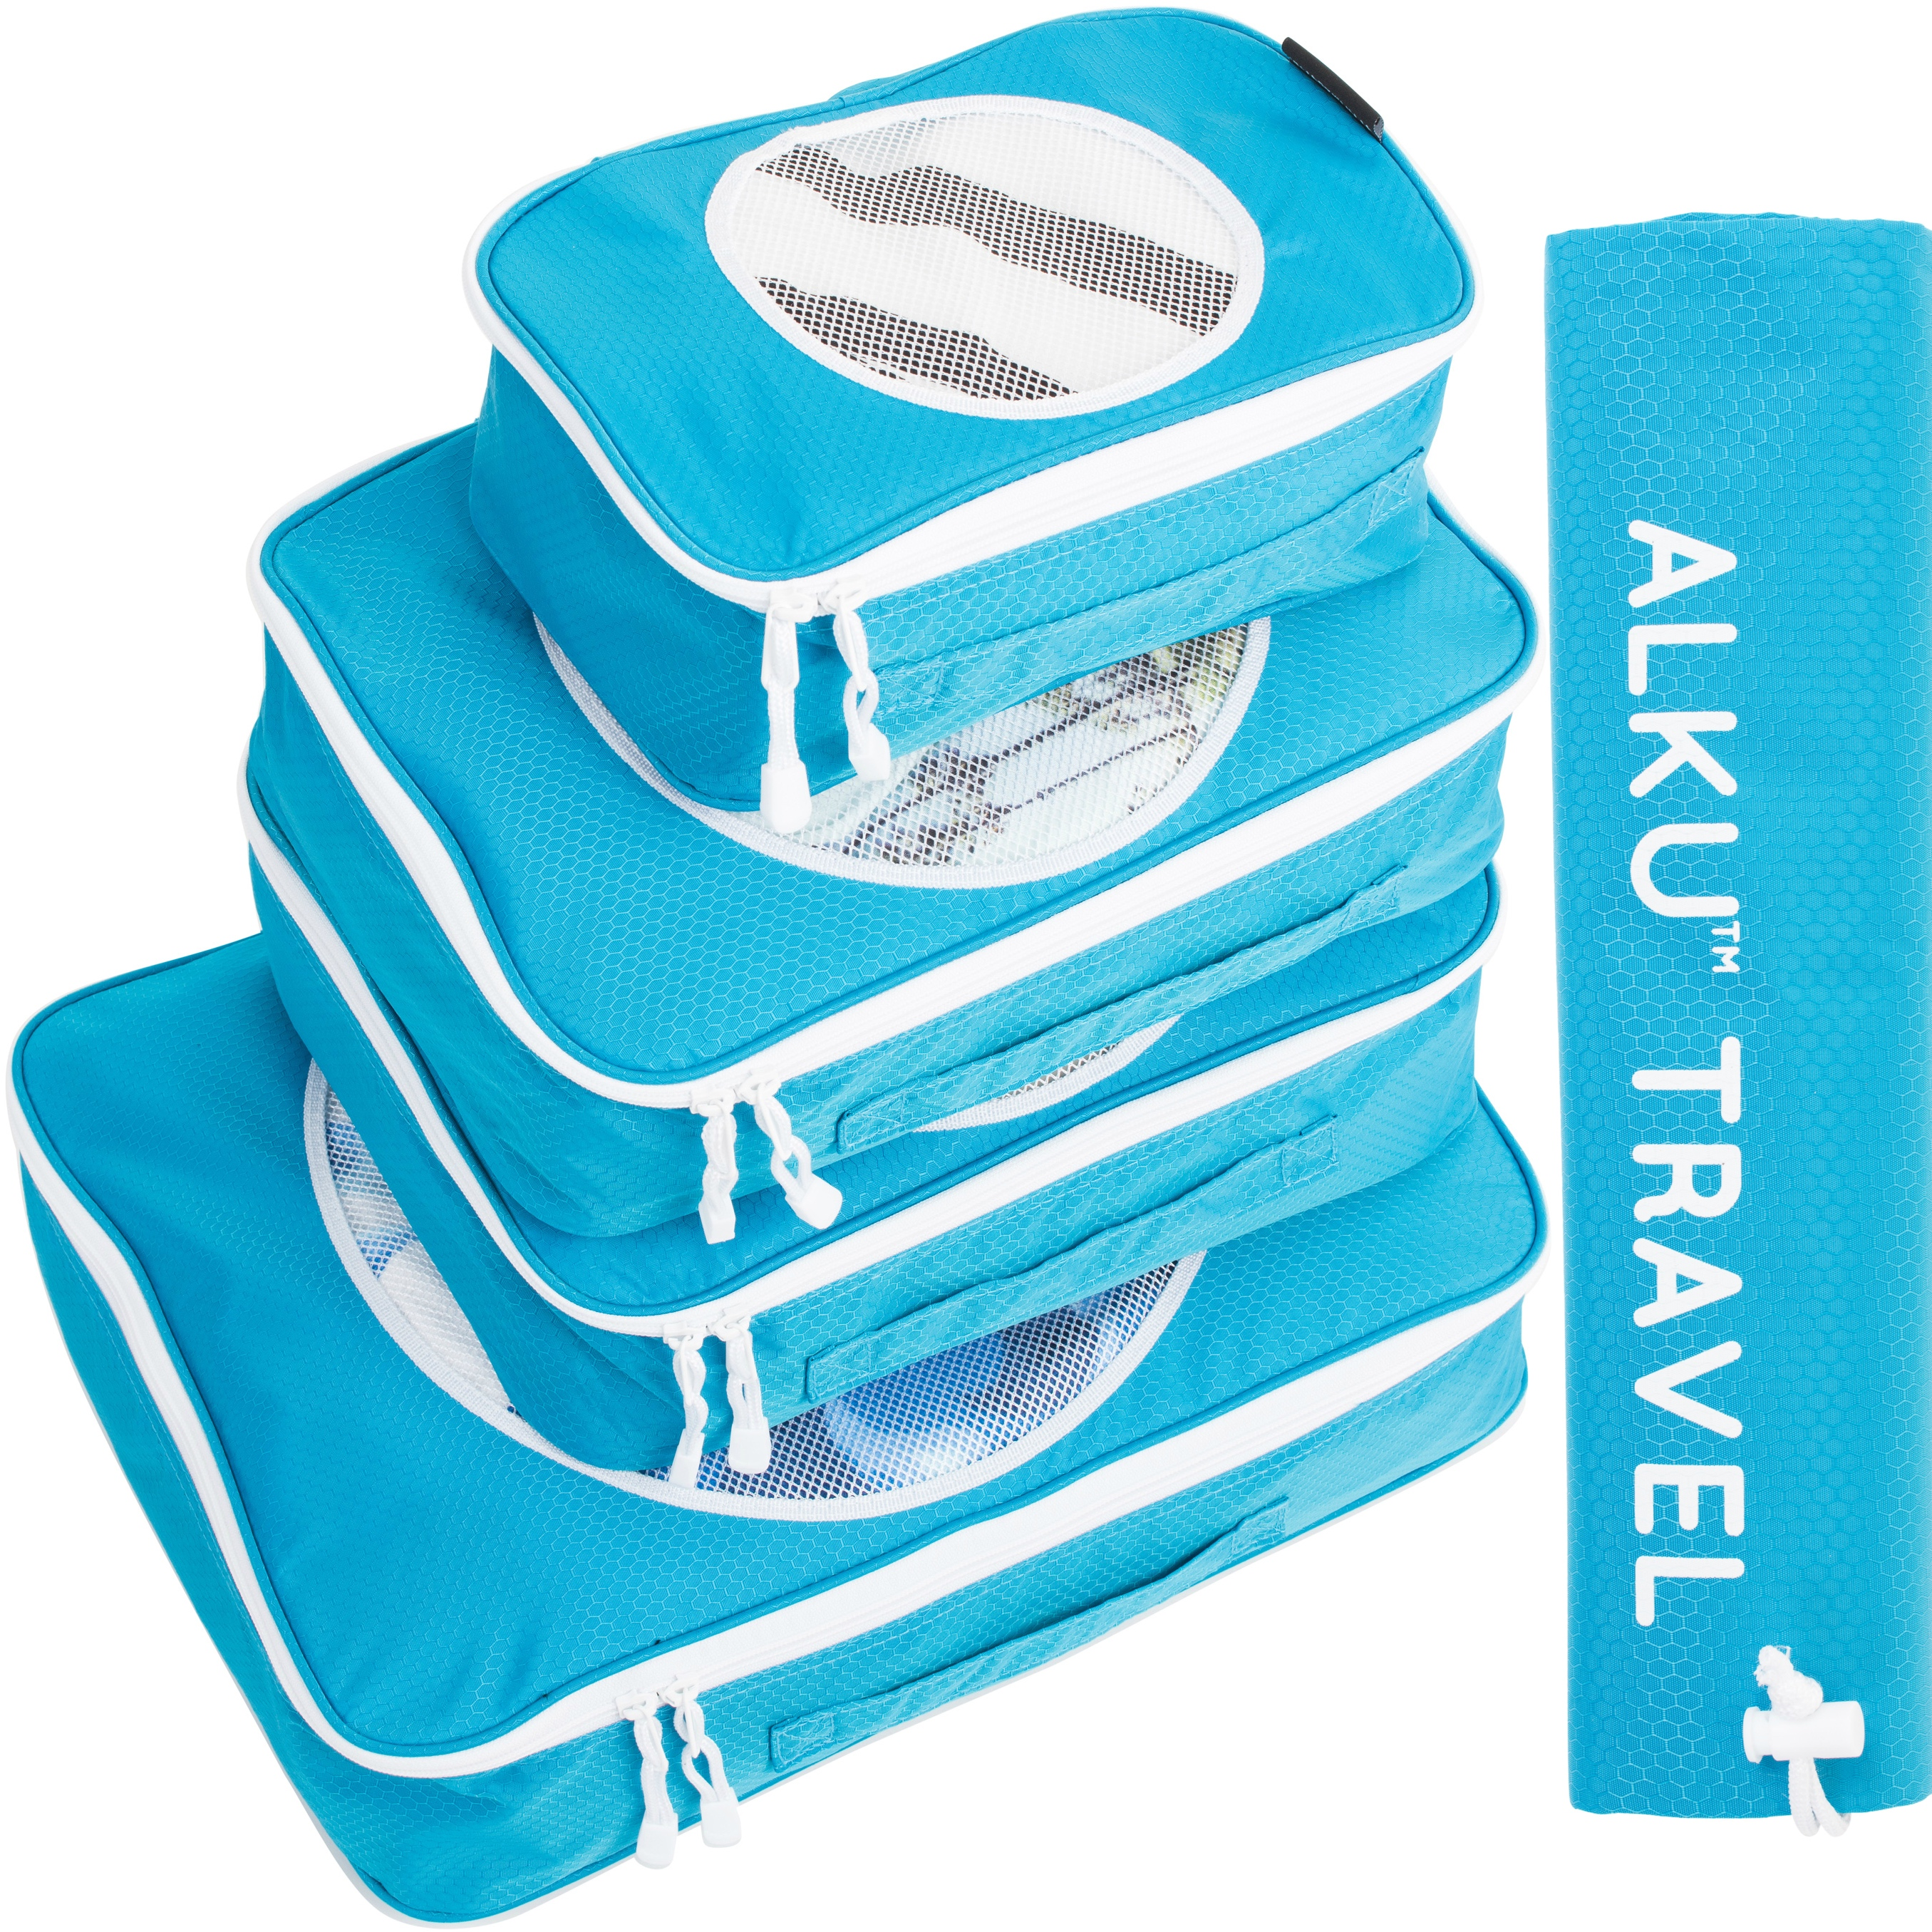 AlkuTravel-Packing-Cubes-Bahama-Blue